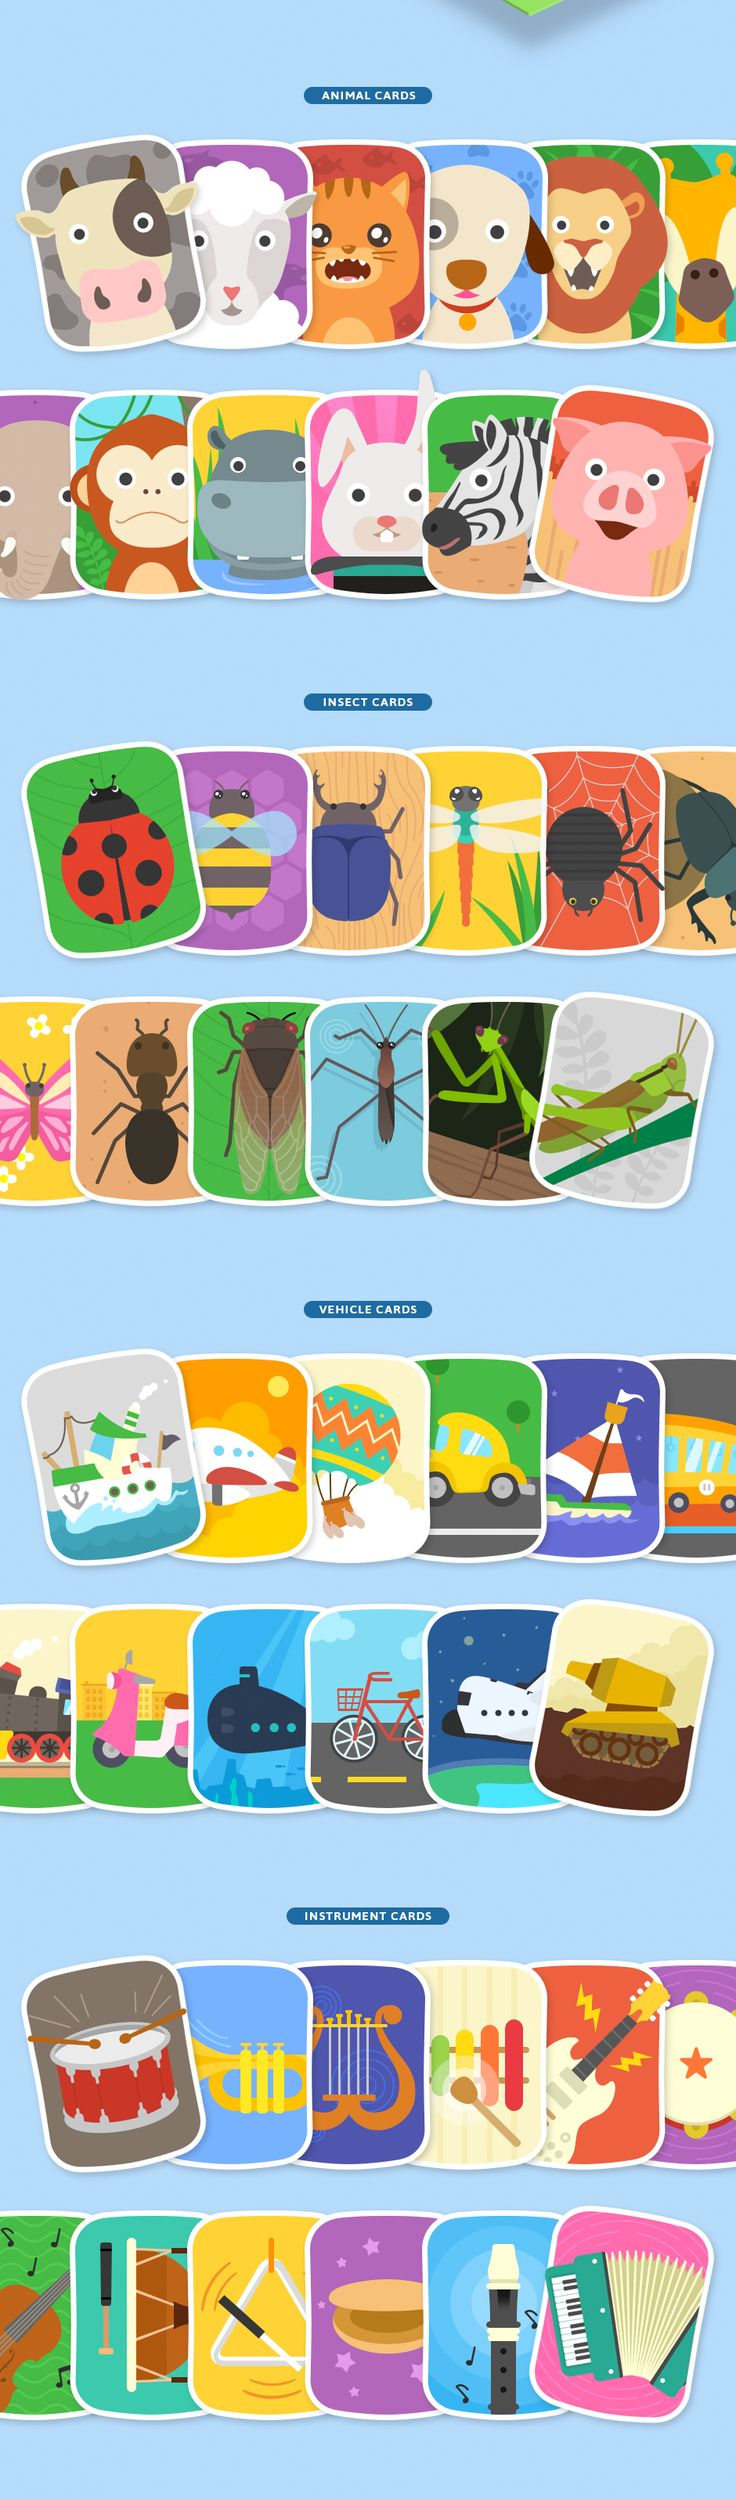 this is a memory game ui for kids, the ui is very user friendly and kid friendly, using big cards with friendly illustrations on them that are flat vectors that are immediately recognizable by a child